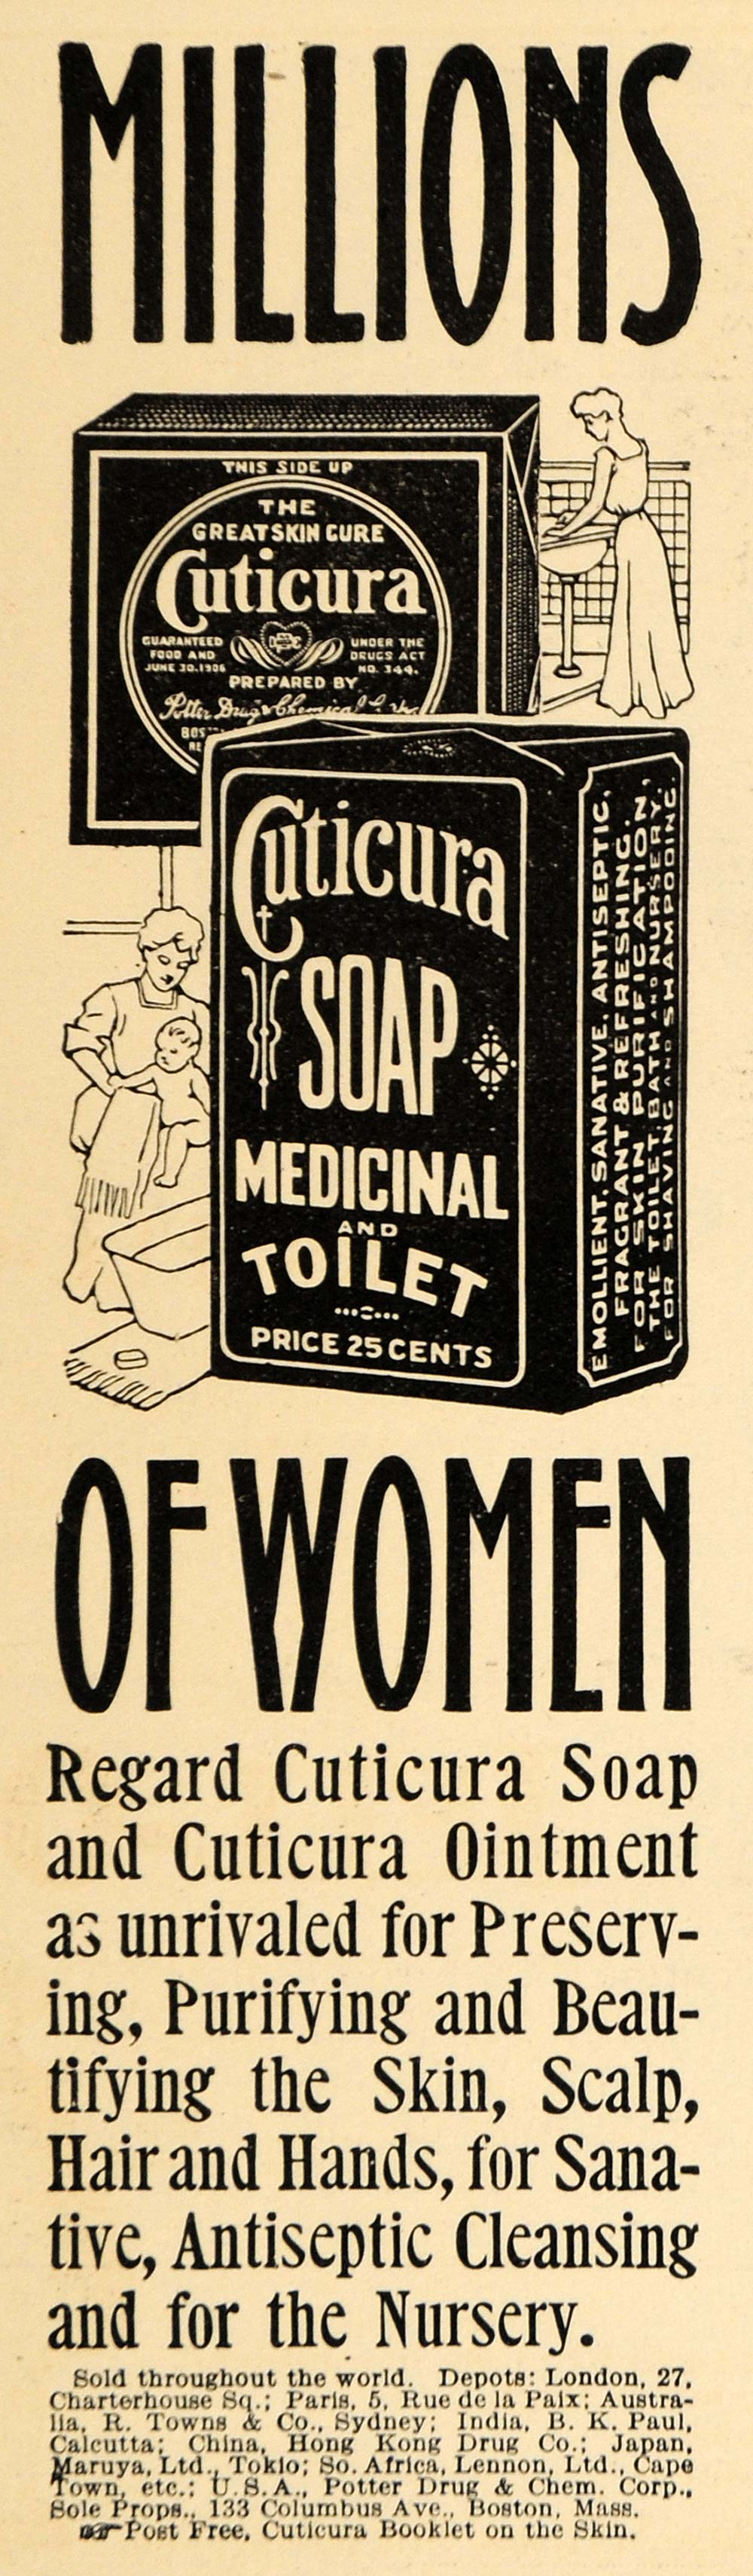 1909 Ad Cuticure Soap Medicinal Toilet Antiseptic Box - ORIGINAL ADVERTISING HM1